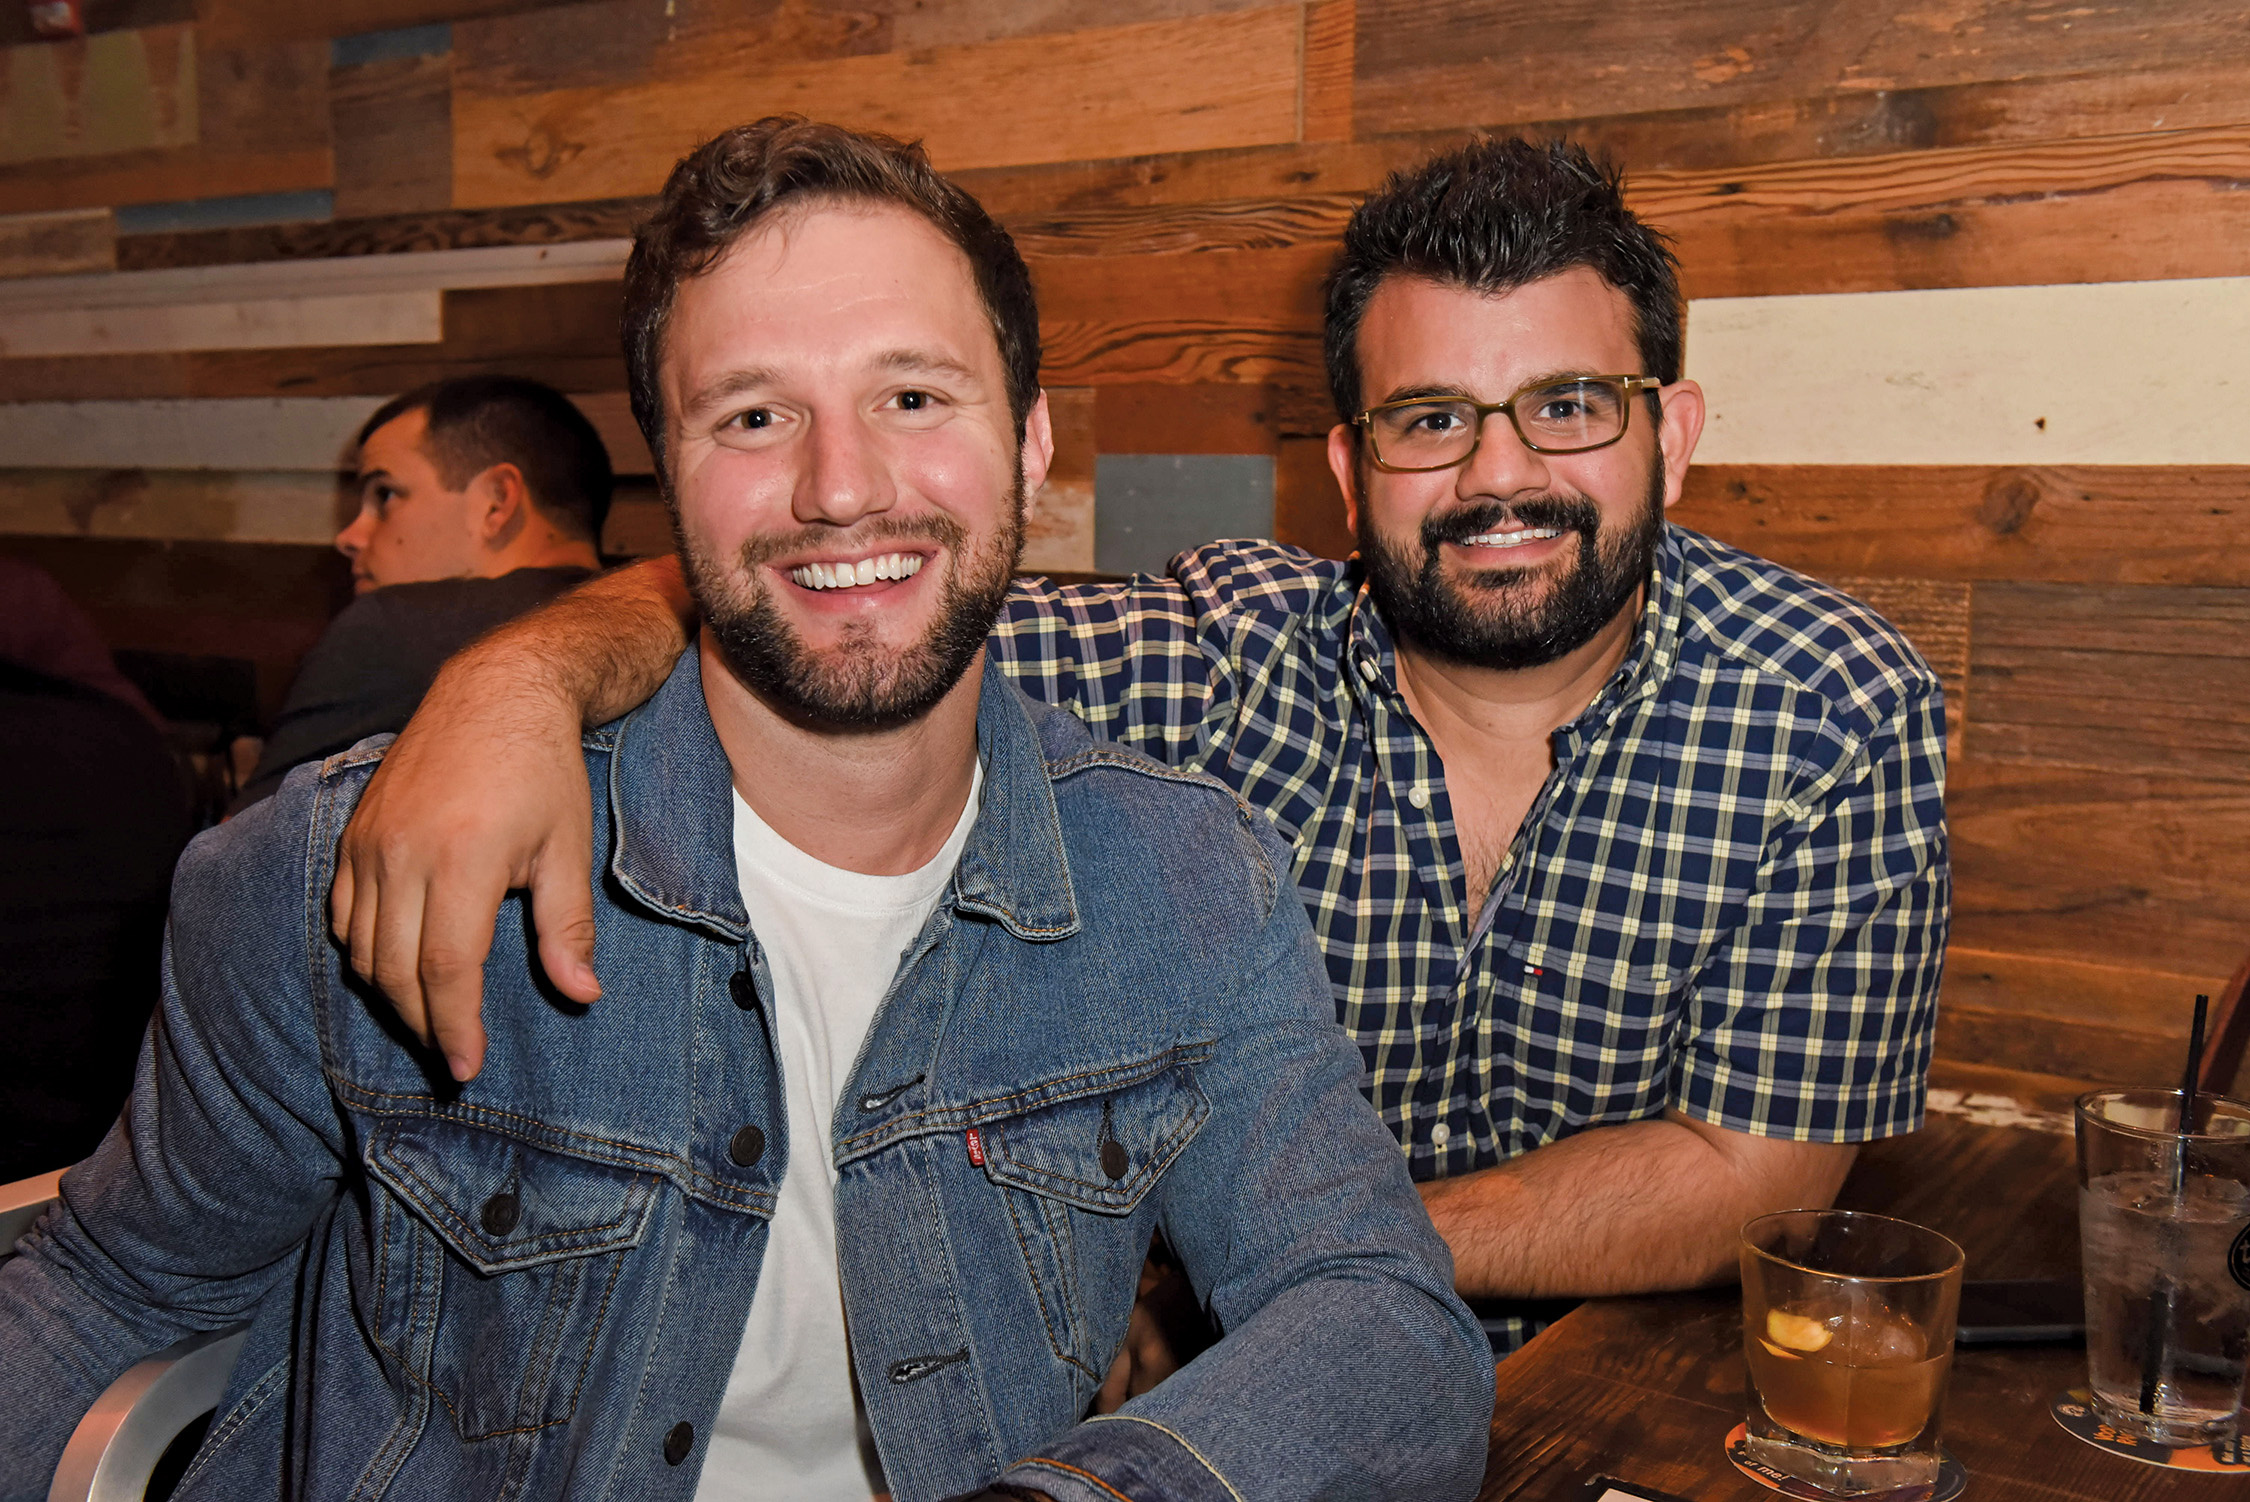 Adam-Willis-and-Adam-Diaz-Around-Town-The-Seen-Fort-Lauderdale-Venice-Magazine-Michele-Eve-Sandberg